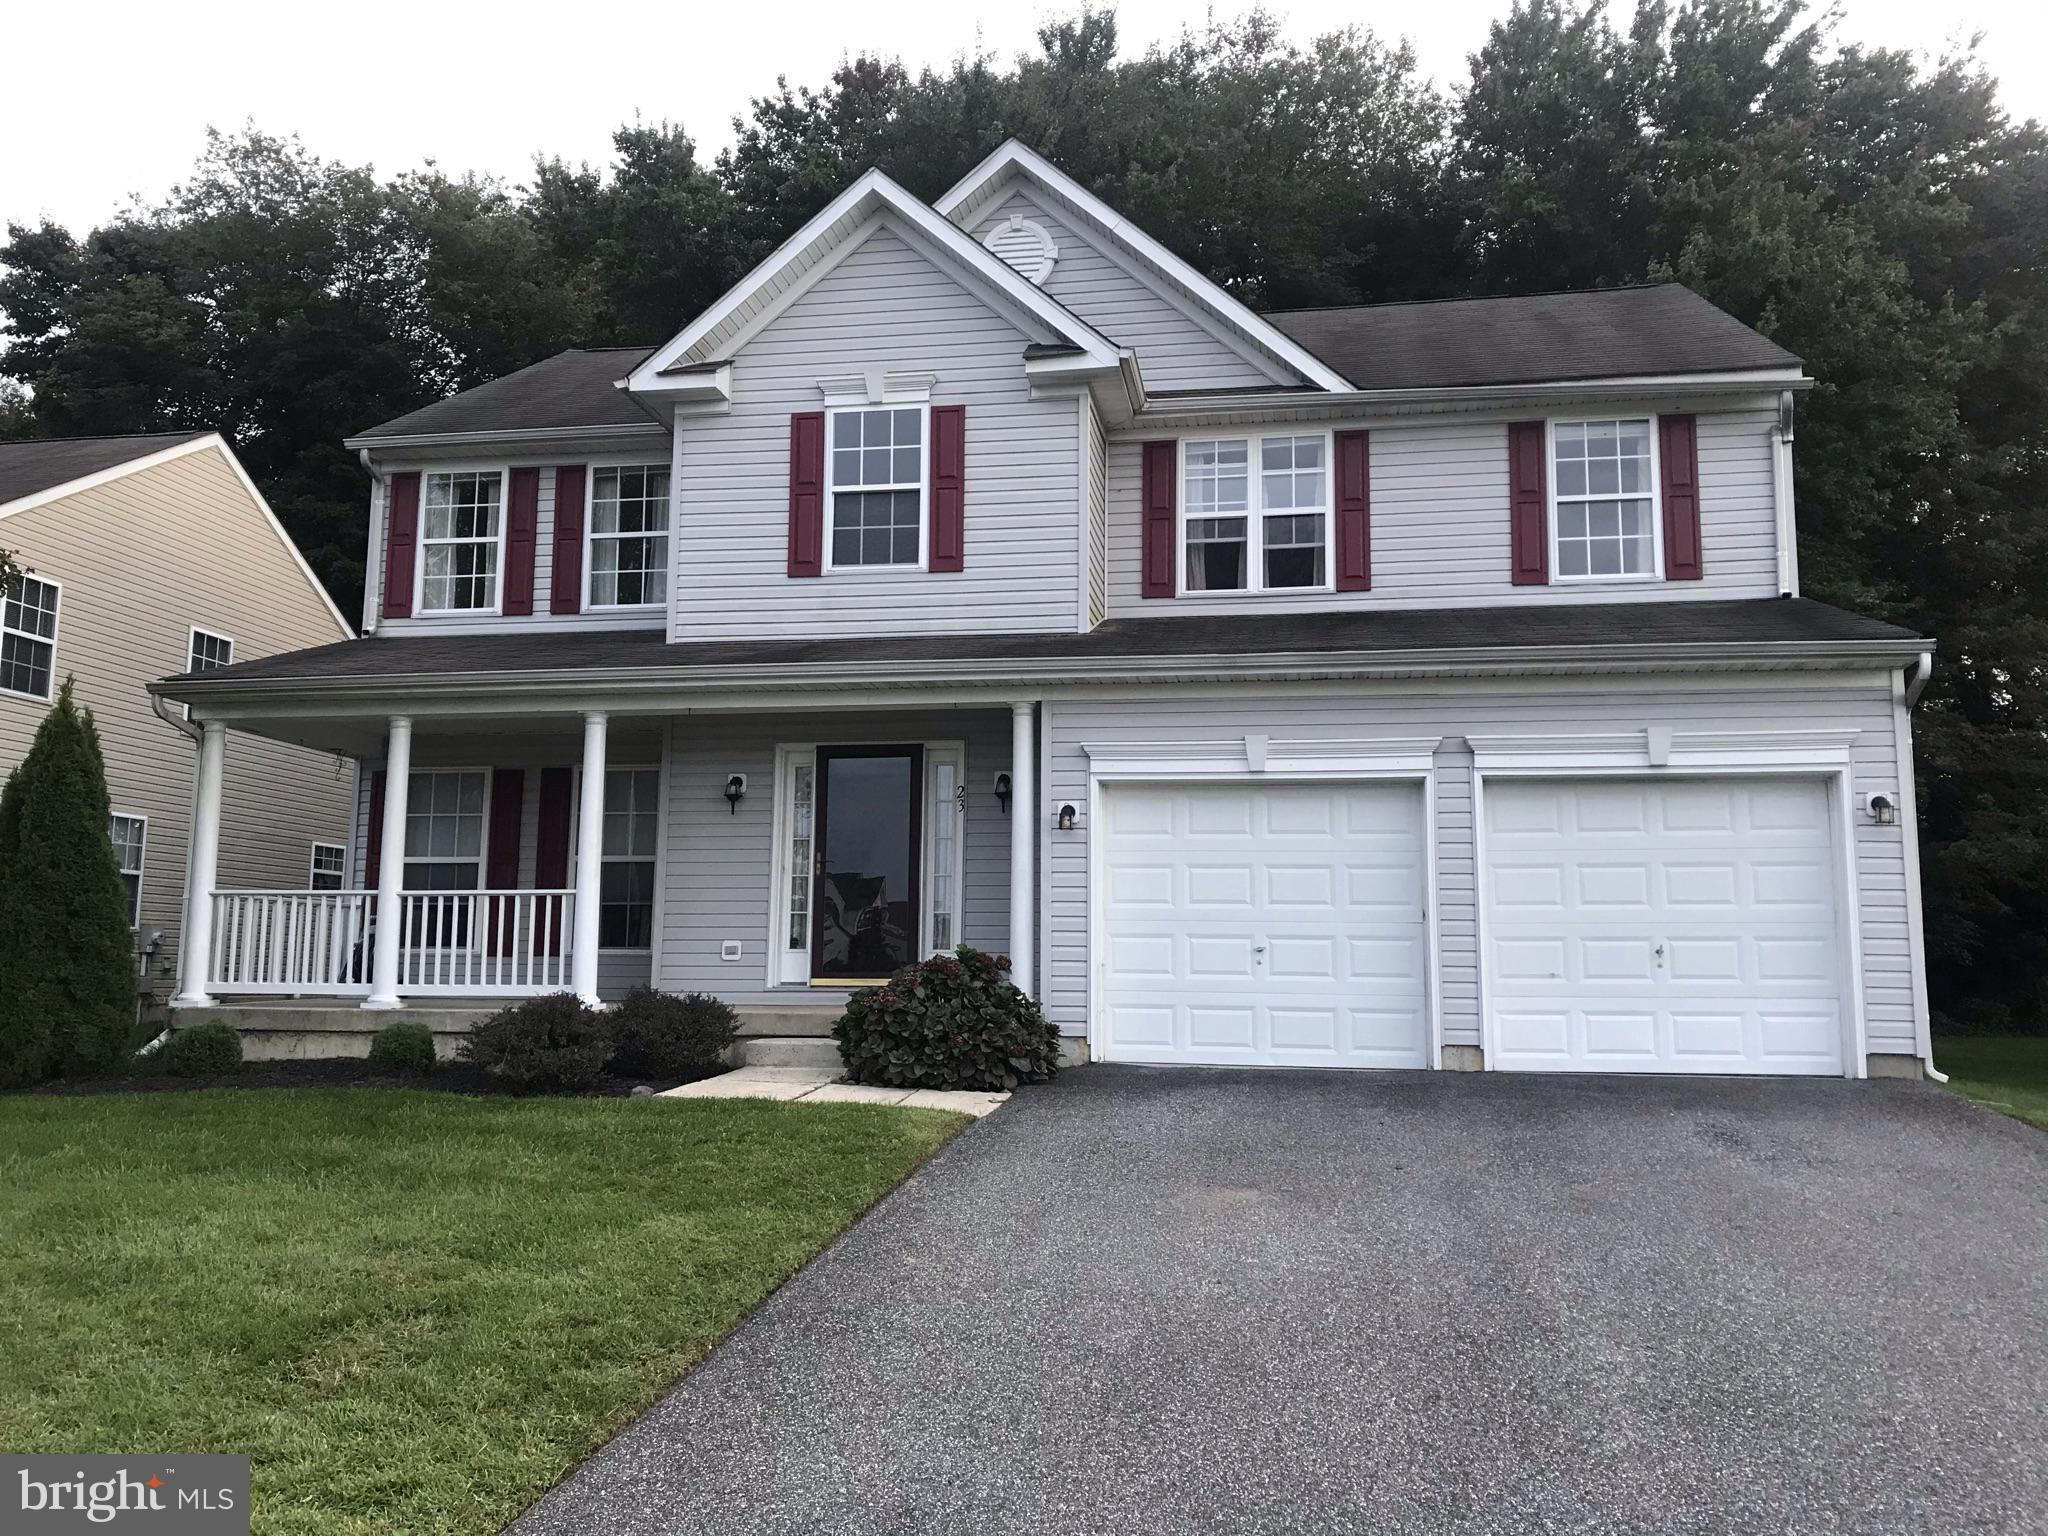 Well maintained 4 bedroom, 2.5 bath 2 car garage home now available in the community of Wynthorpe.